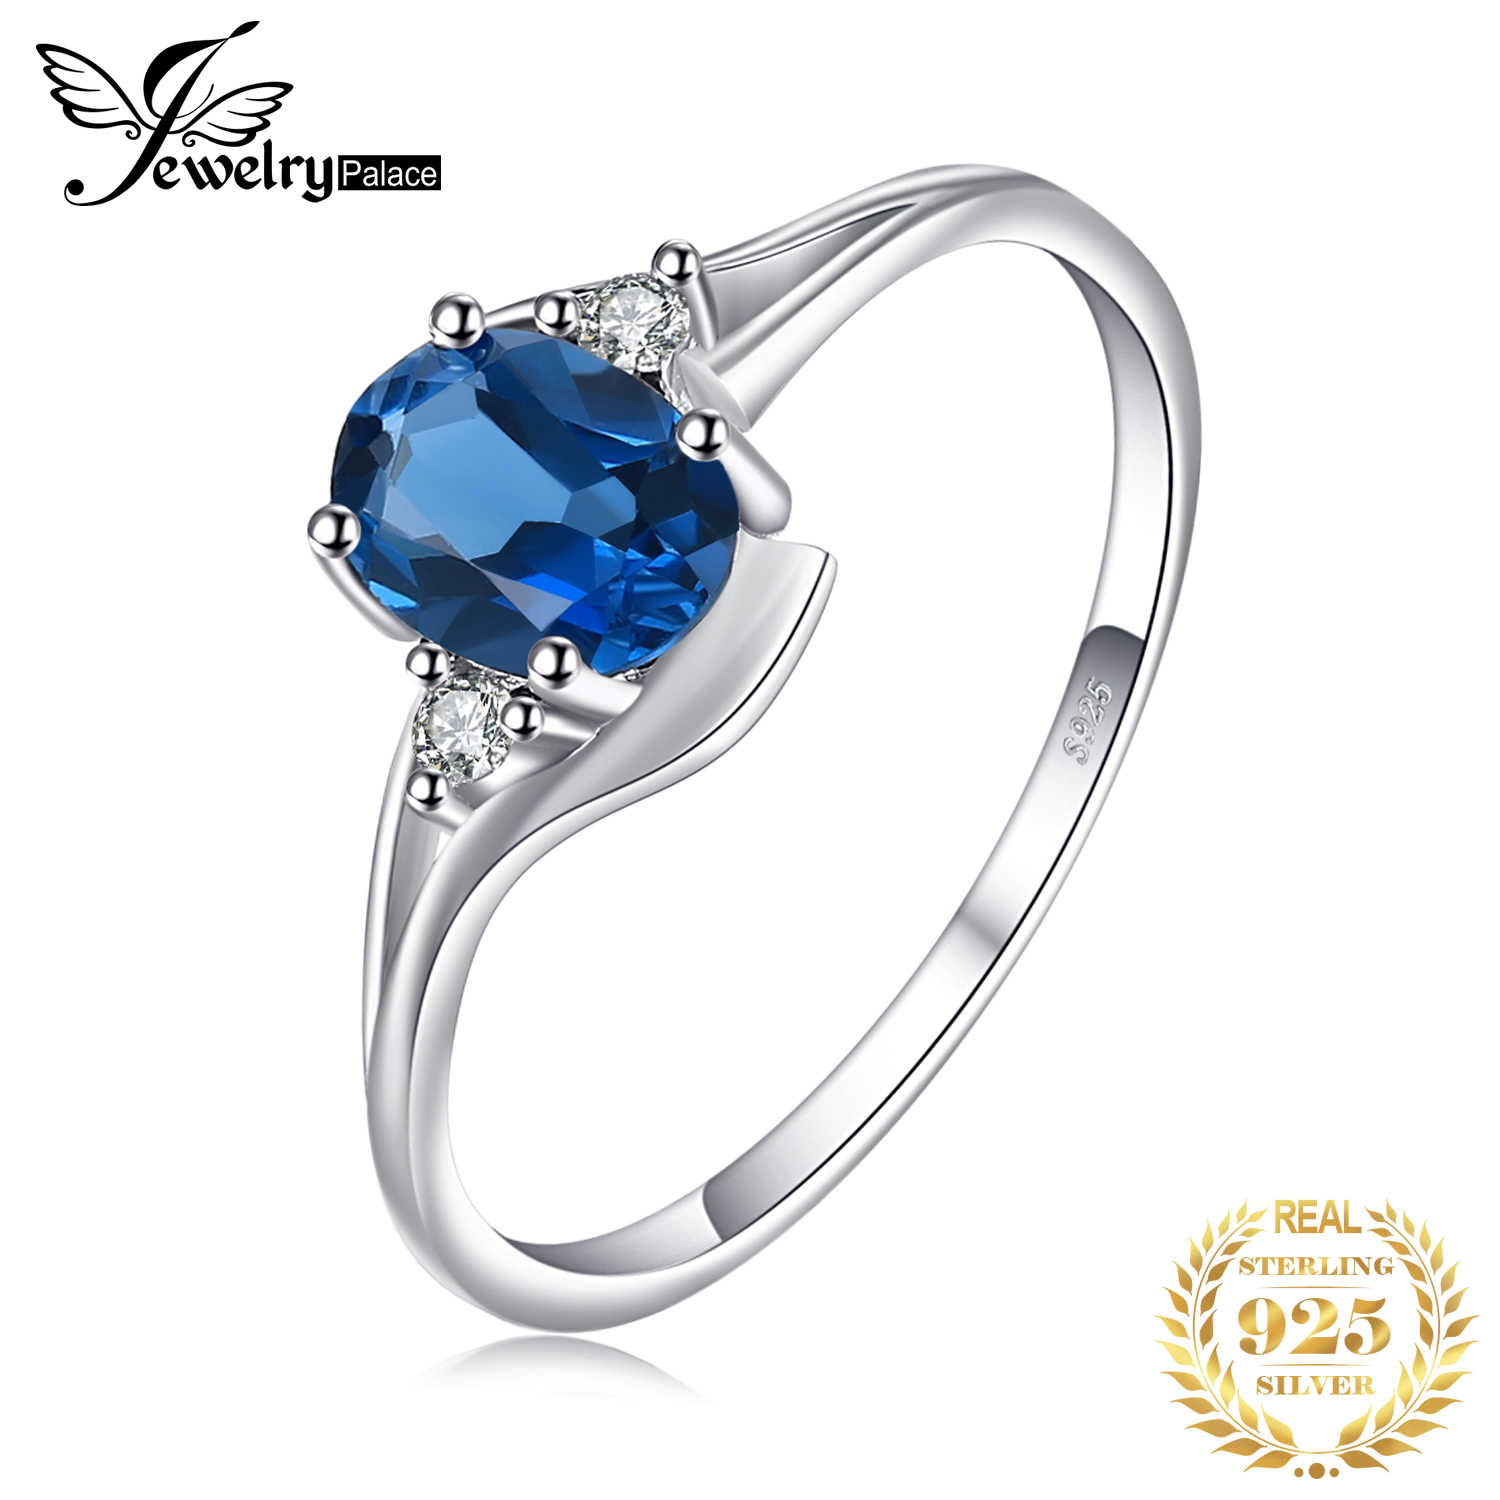 JewelryPalace Genuine London Blue Topaz Ring 925 Sterling Silver Rings for Women Engagement Ring Silver 925 Gemstones Jewelry